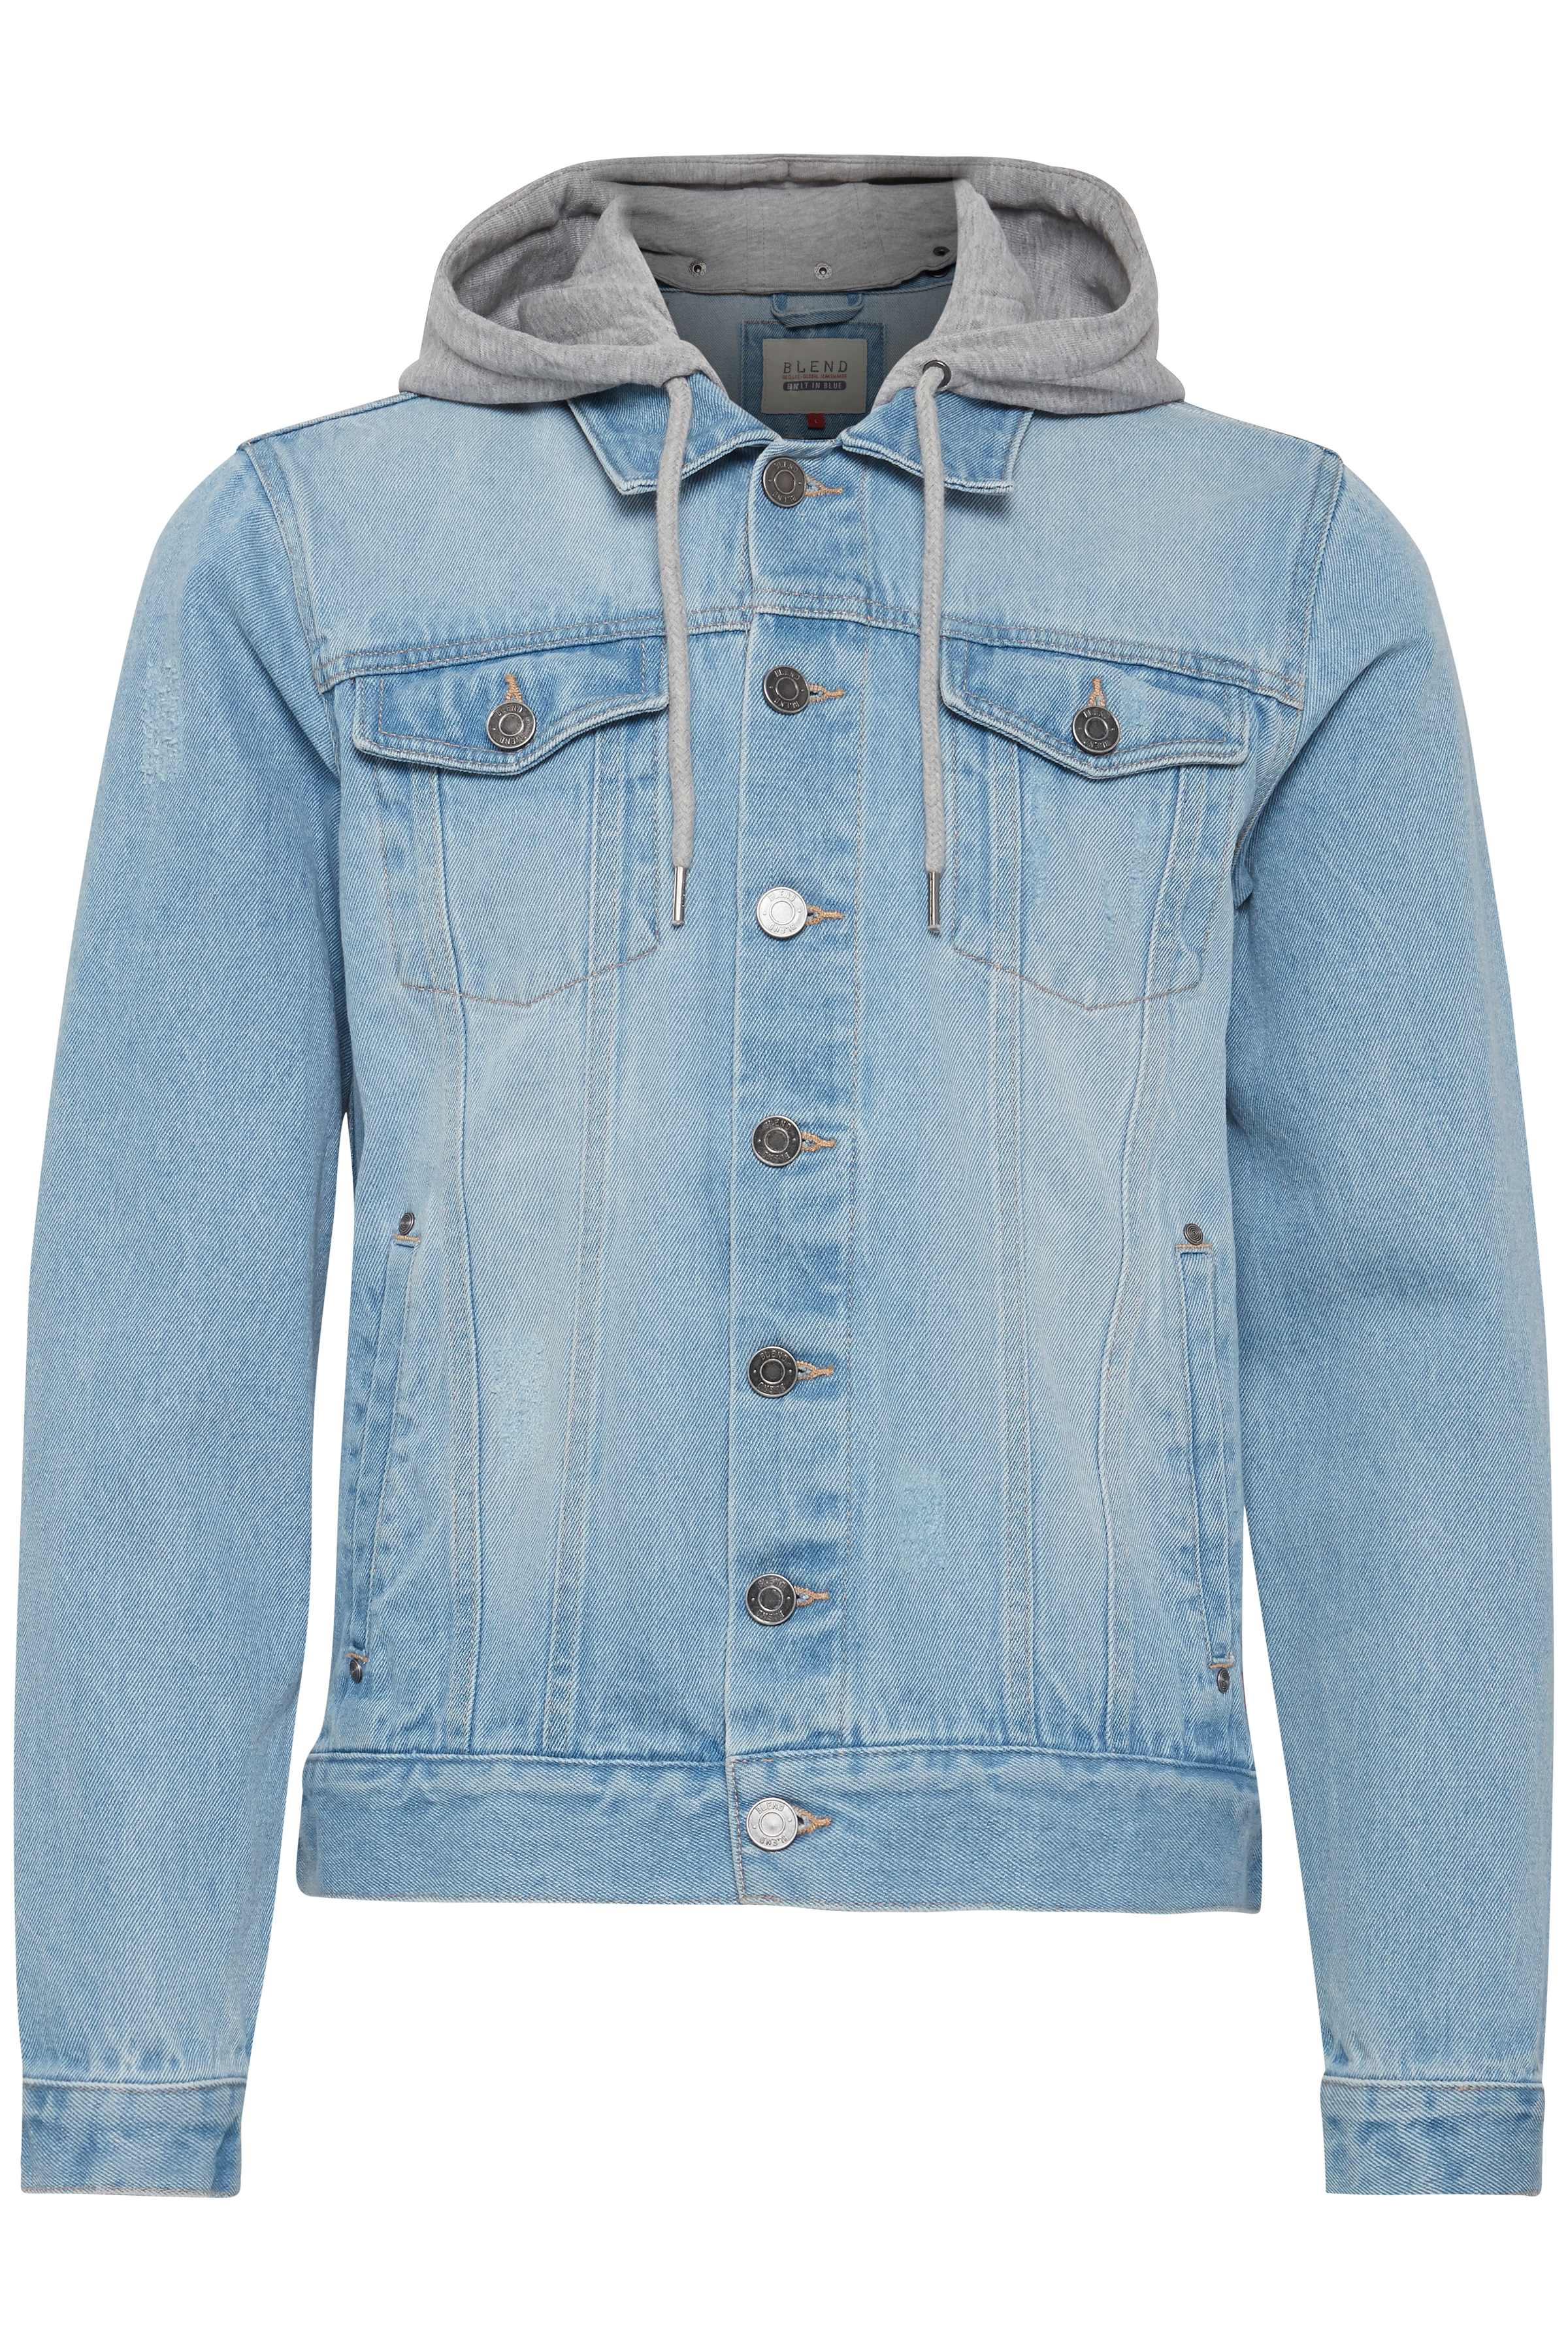 Denim light blue